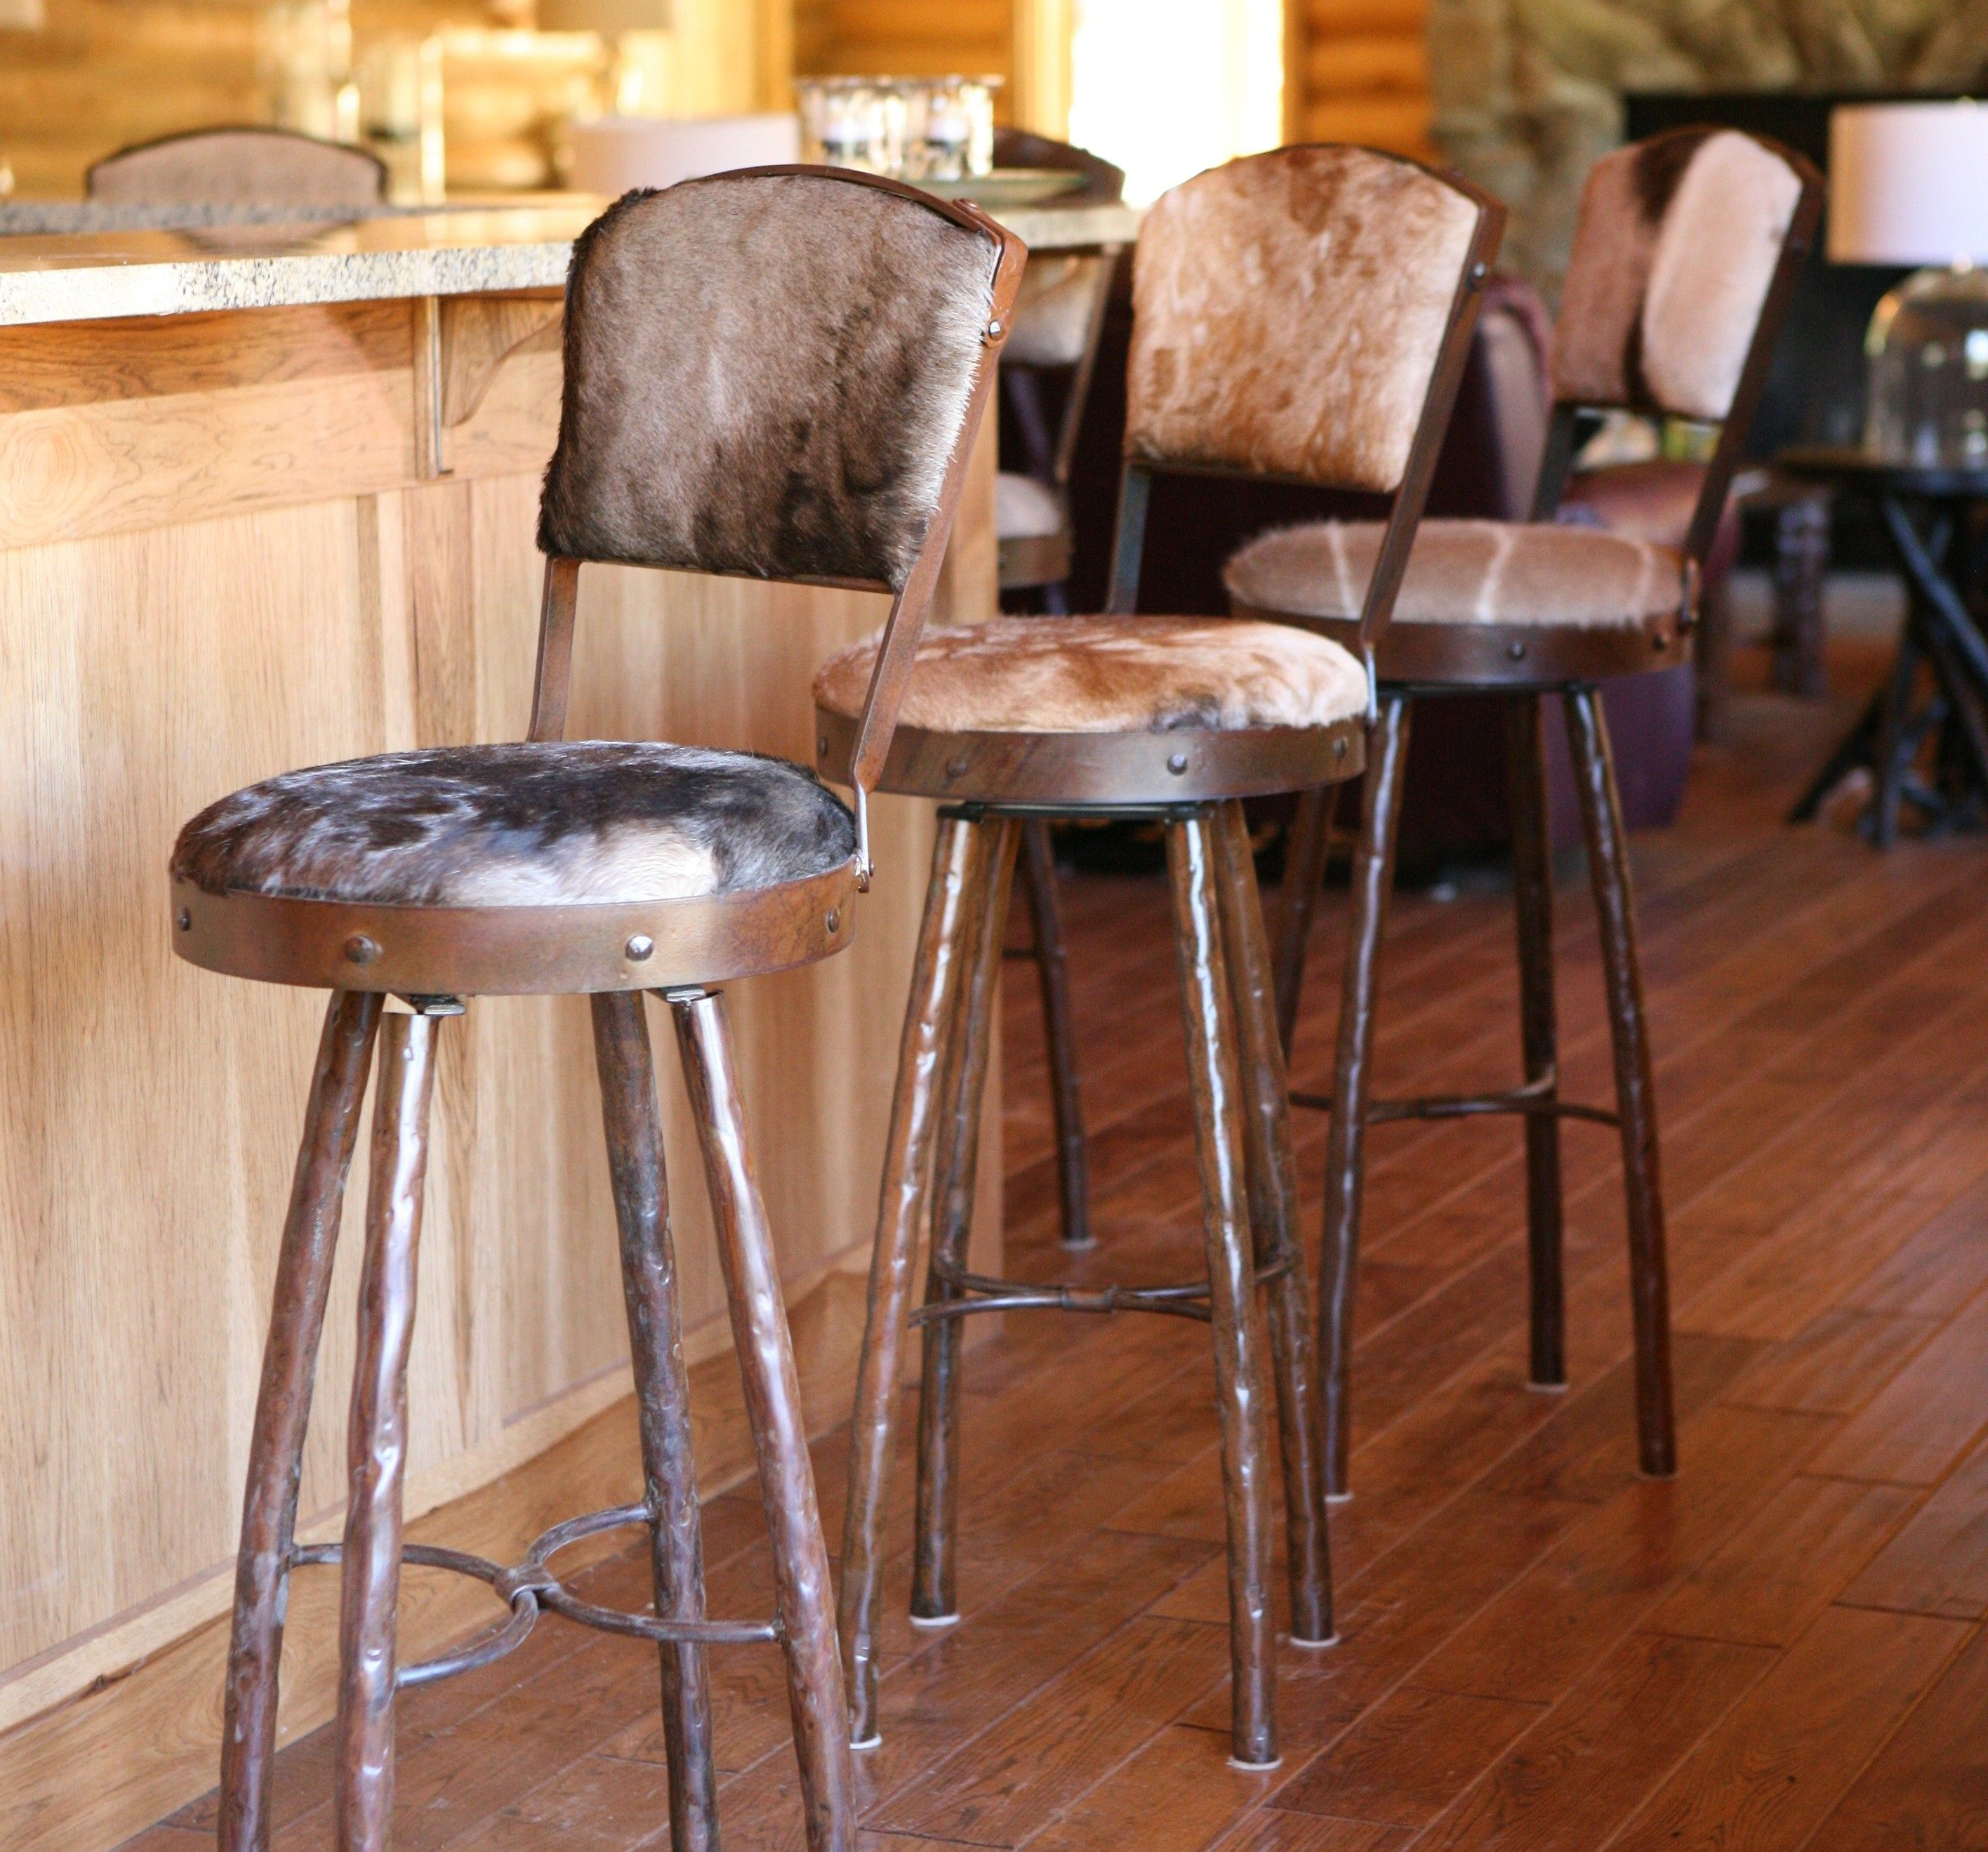 bar stools with backs for inspiring high chair design ideas antique bar stools with backs on. Black Bedroom Furniture Sets. Home Design Ideas